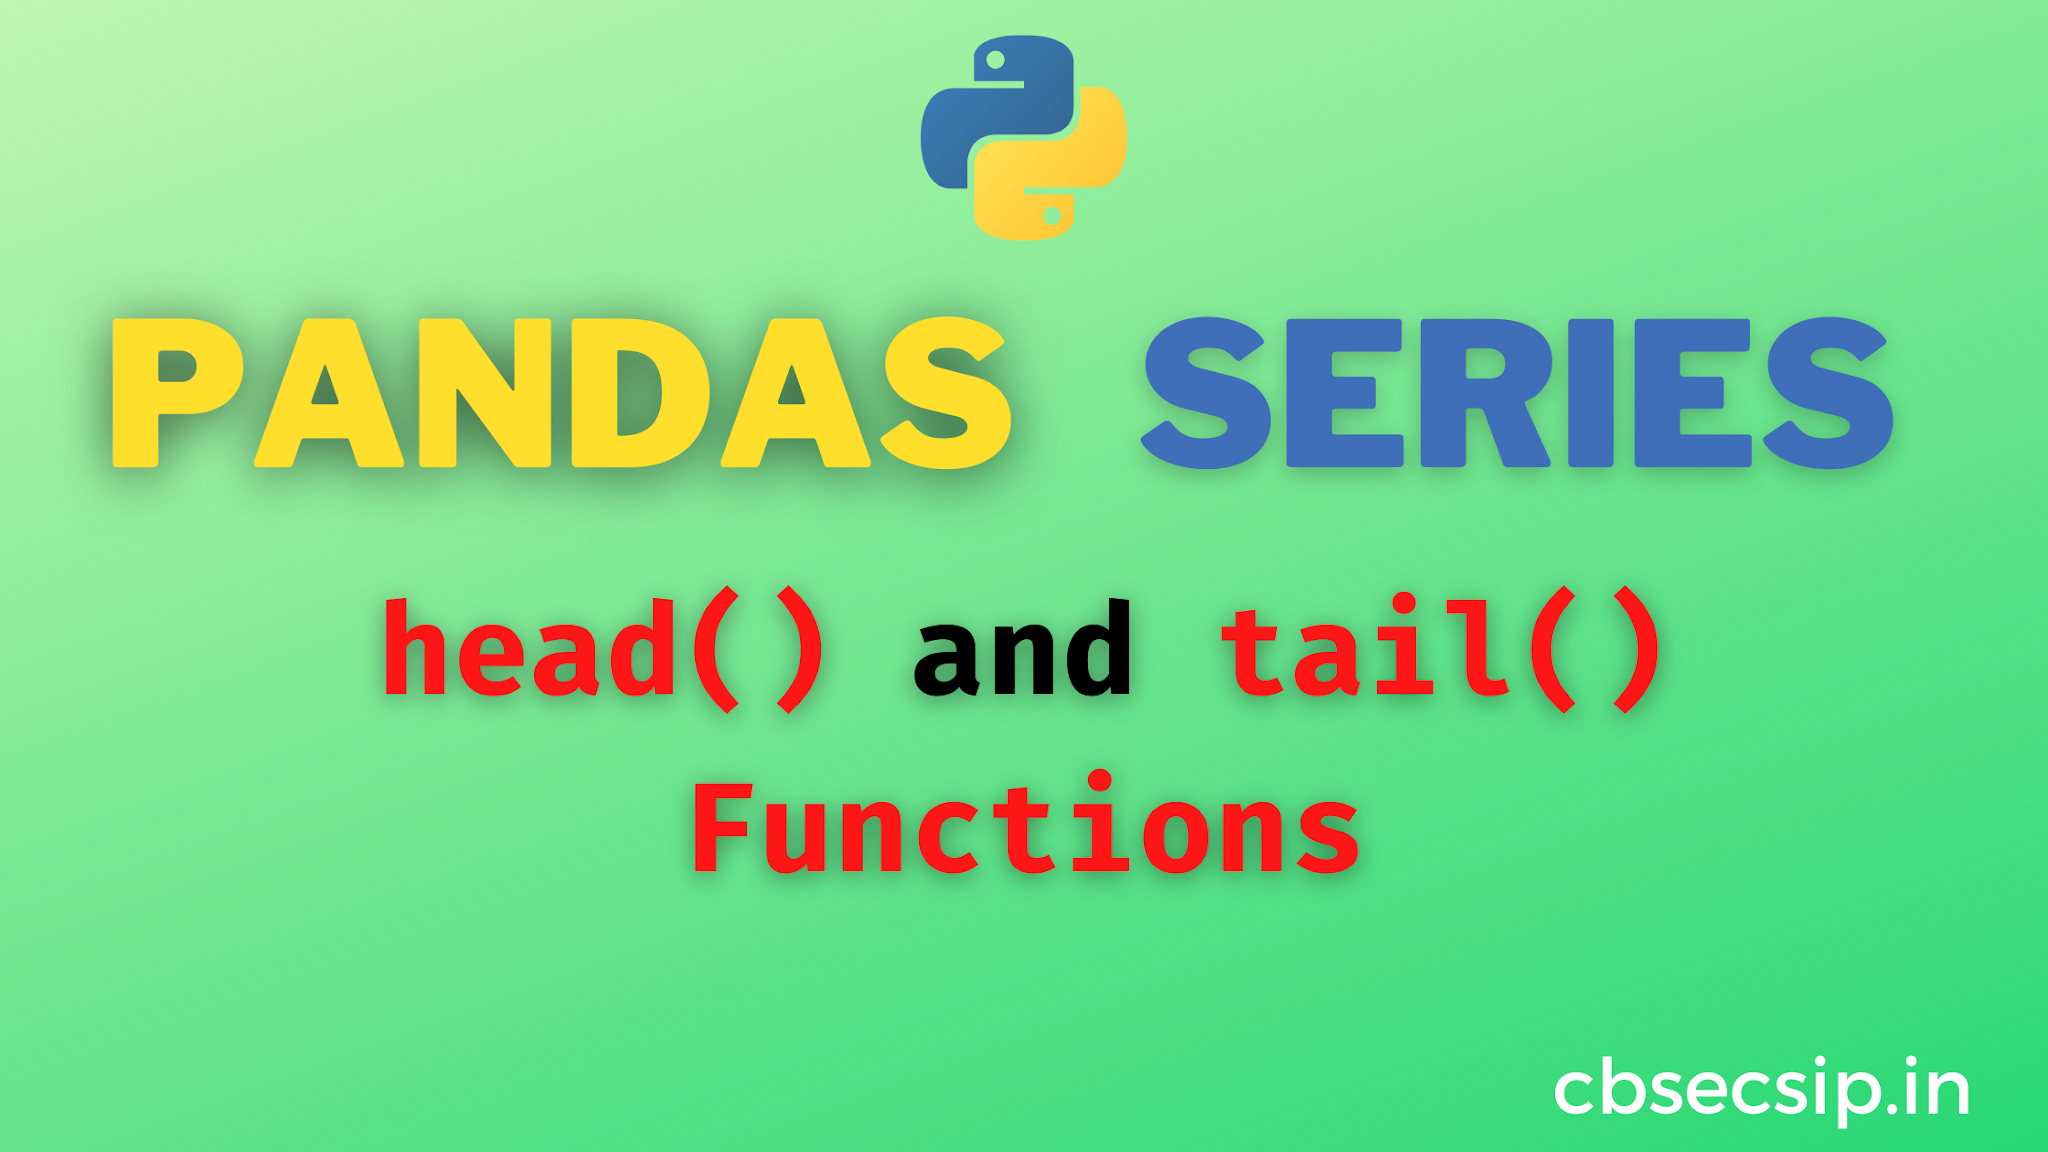 head() and tail() functions of Series Object